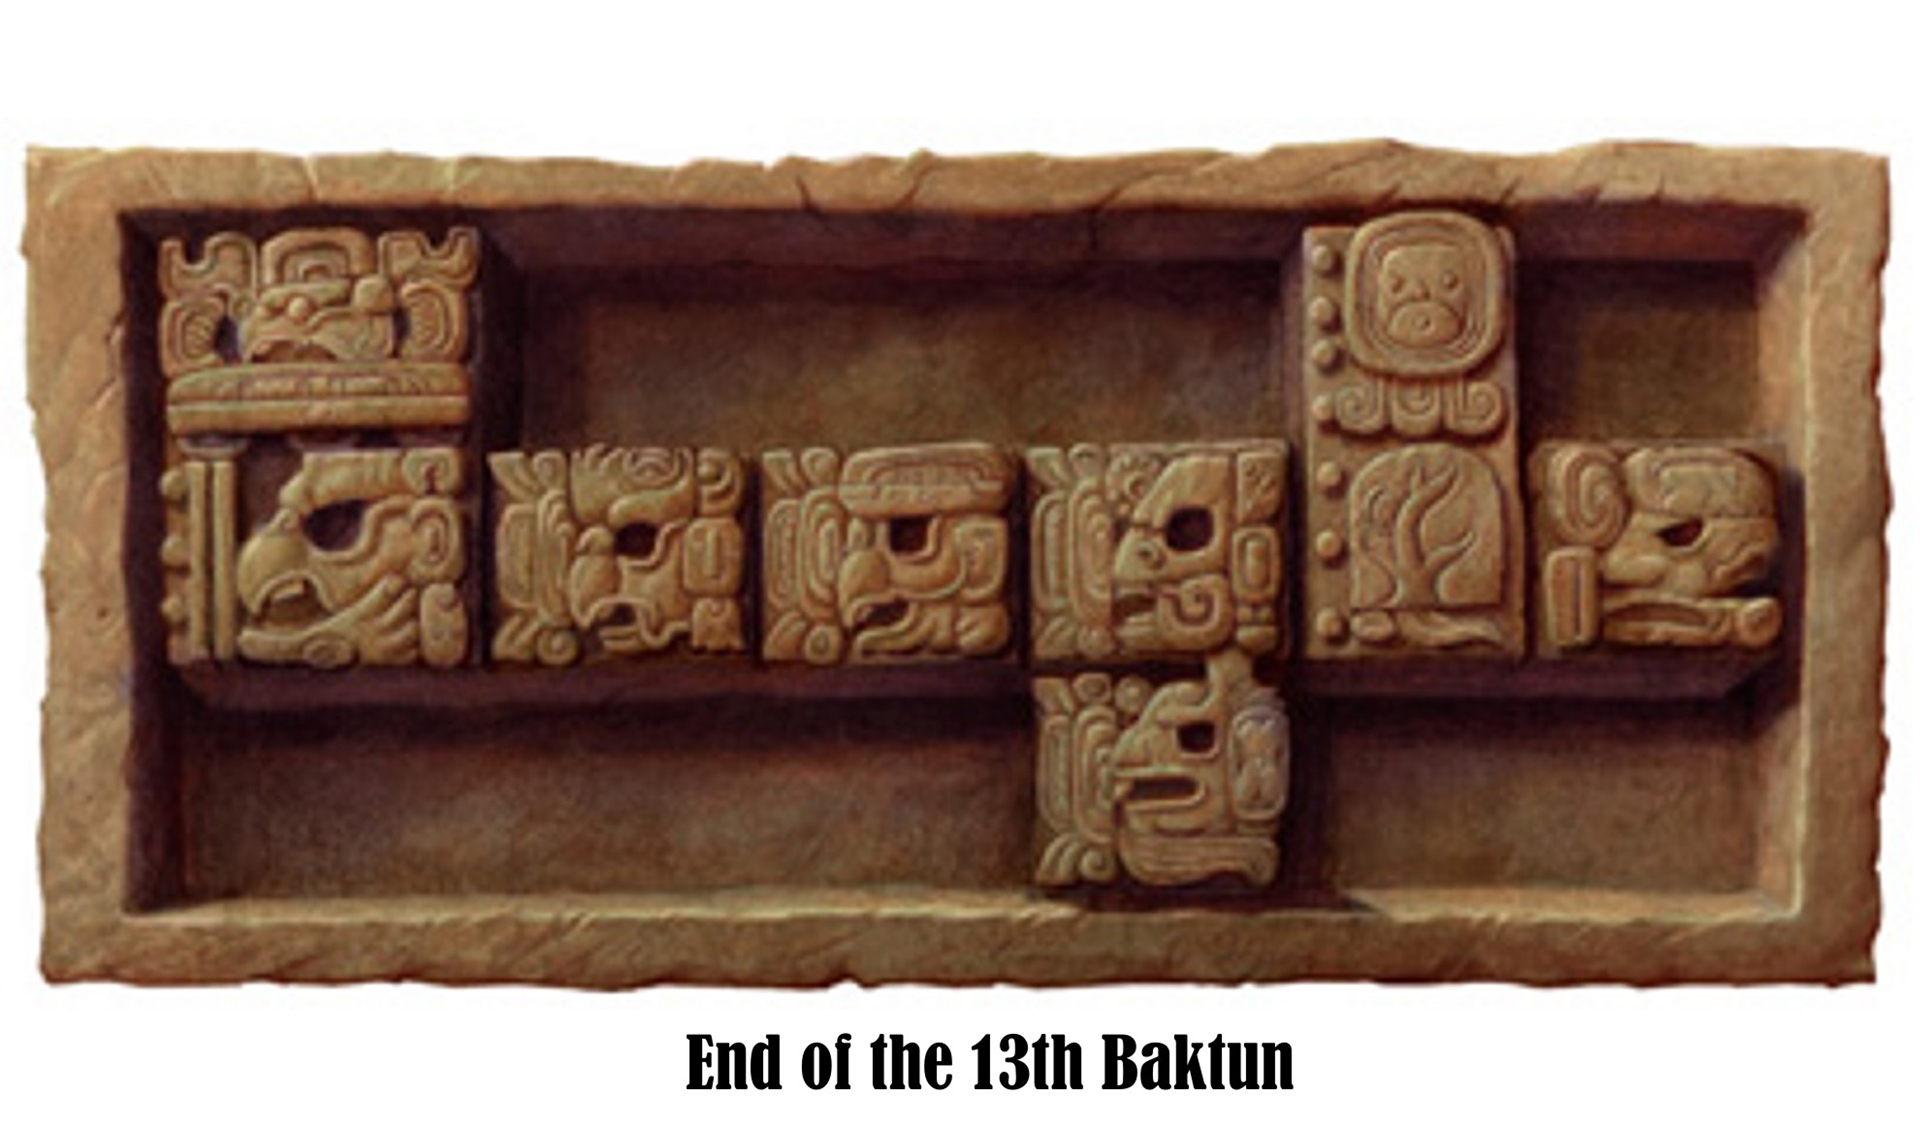 End of the 13th Baktun